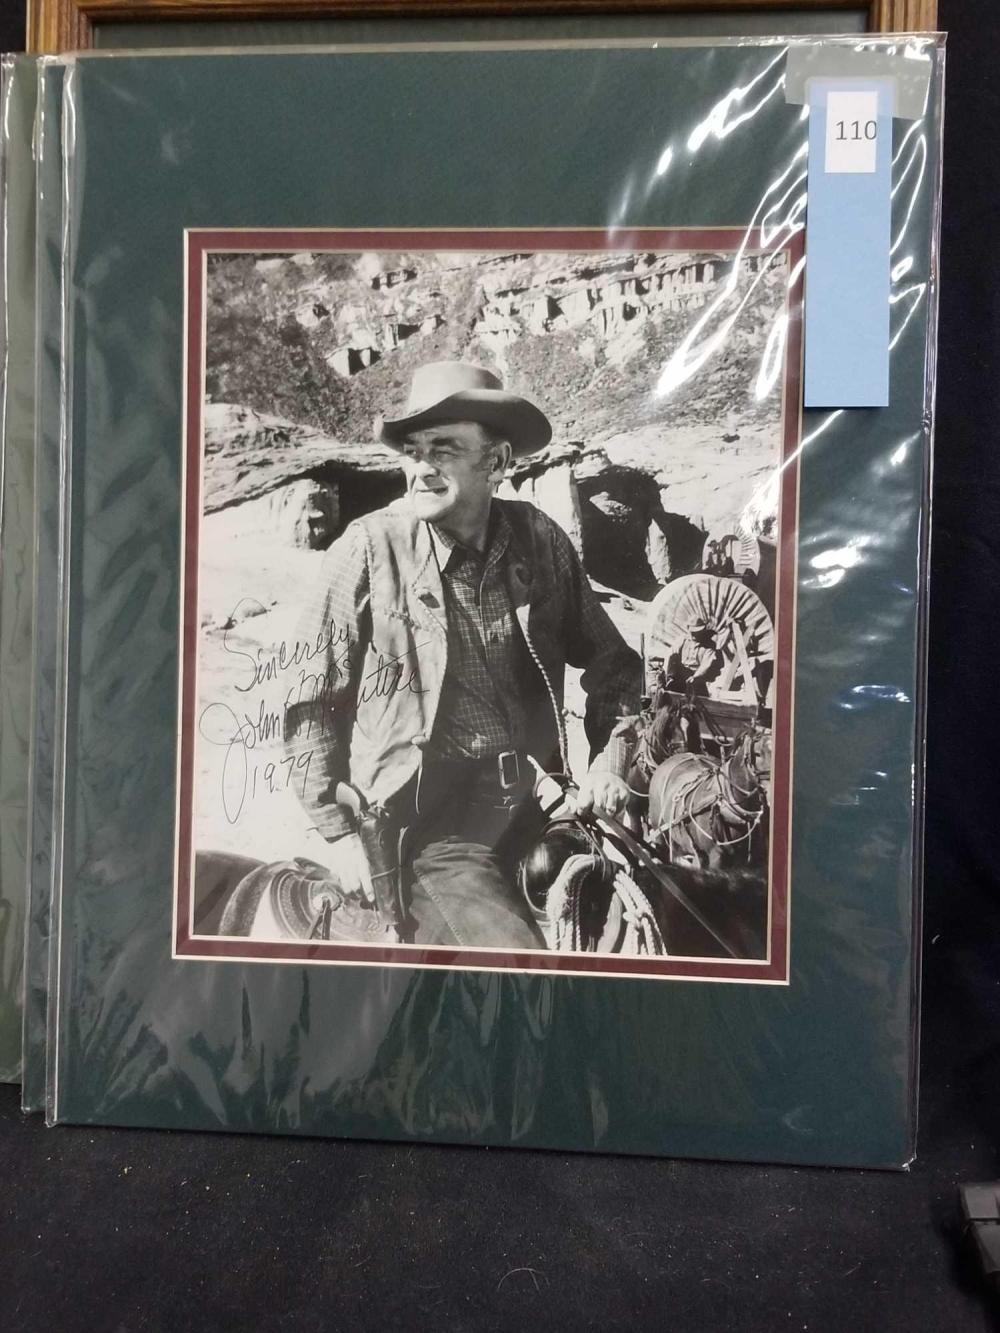 JOHN MC INTIRE SIGNED WESTERN MOVIE STILL PHOTO